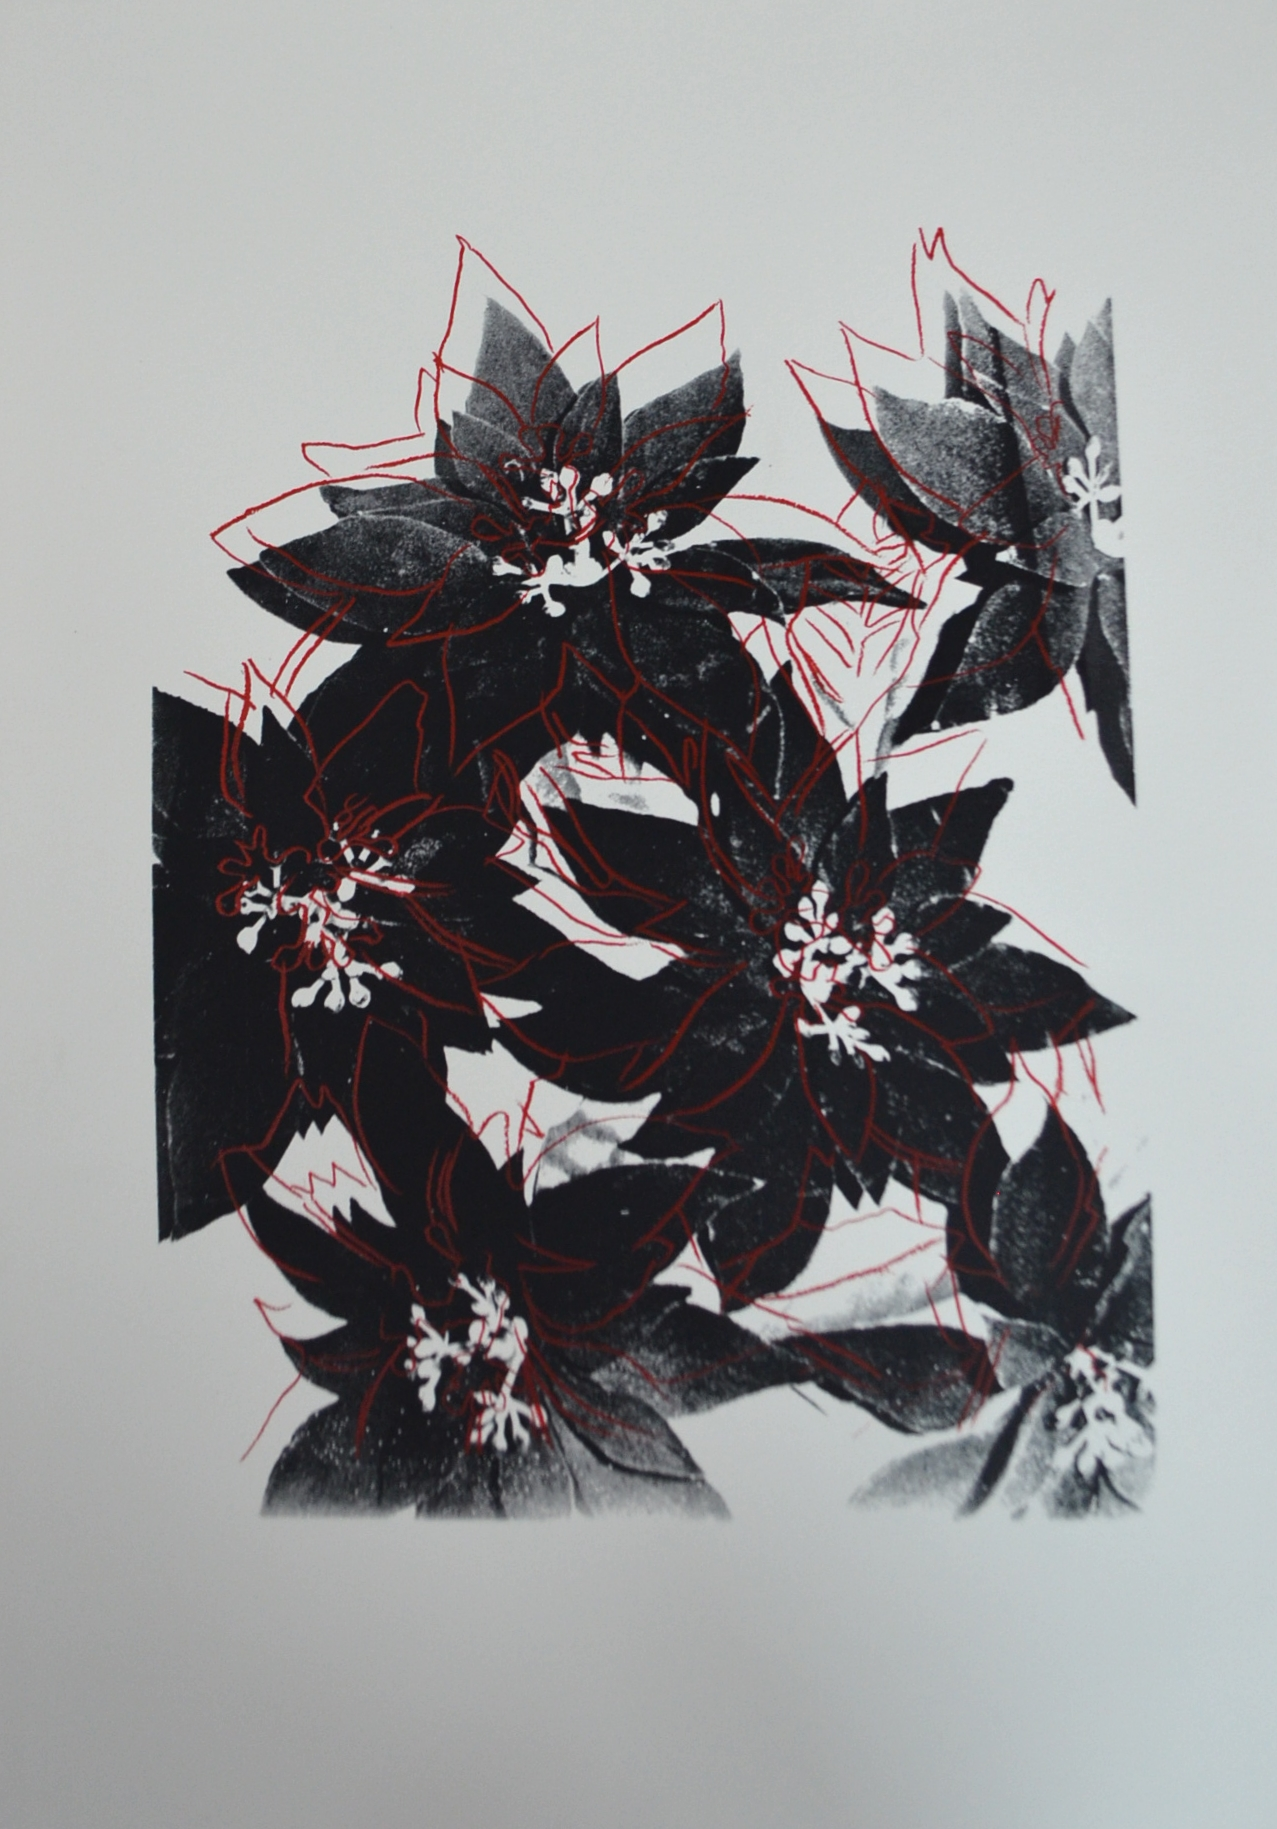 andy warhol's black and red poinsettias